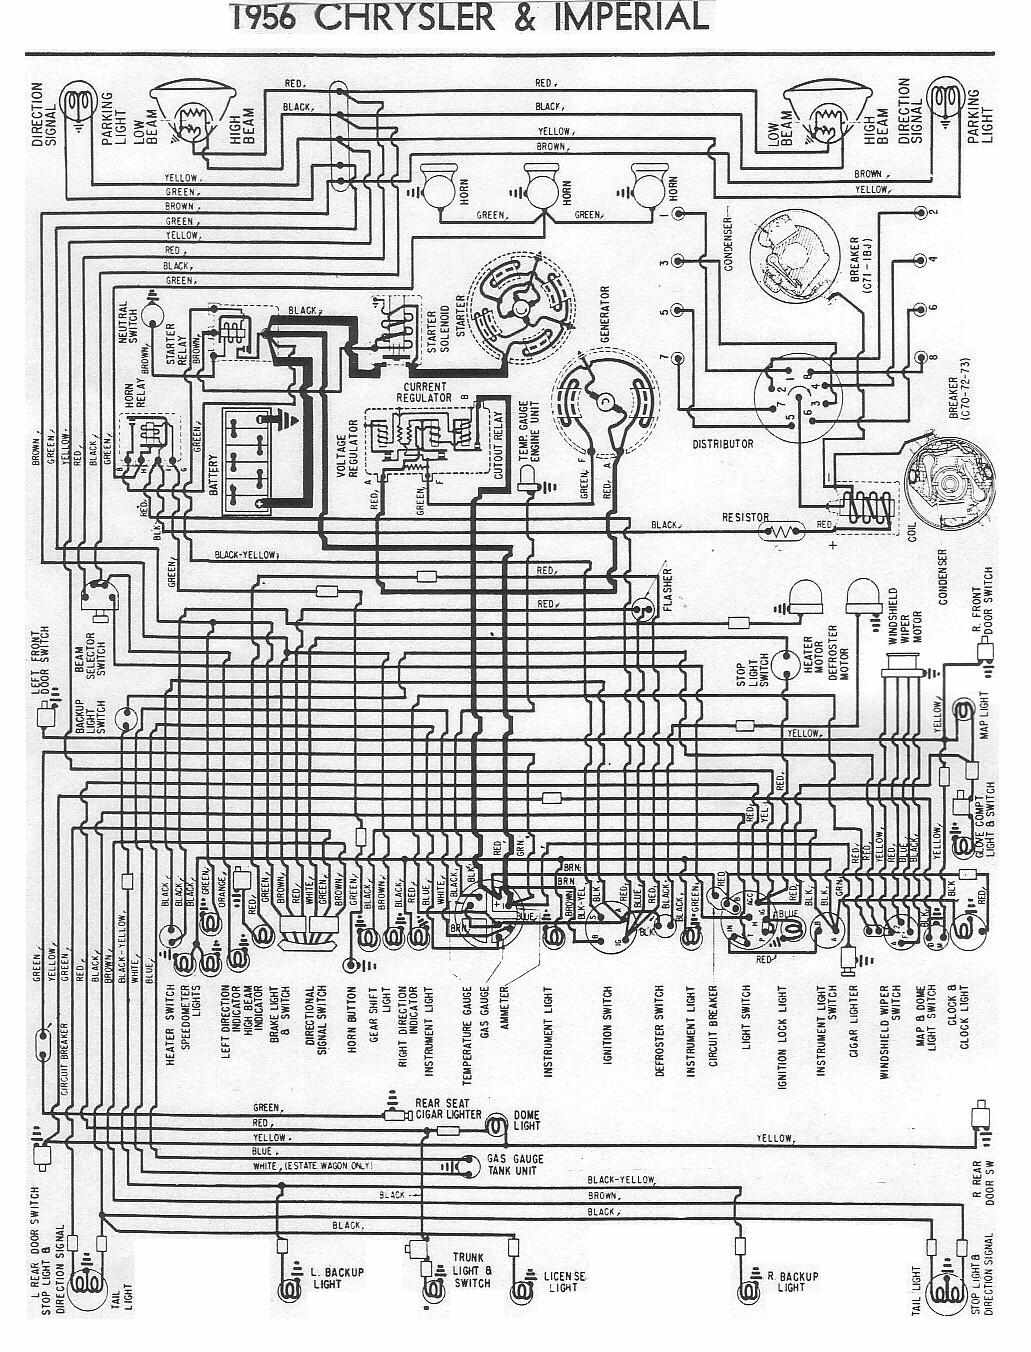 small resolution of 1967 ford f100 wiring harness electrical wiring diagrams of 1956 chrysler and imperial